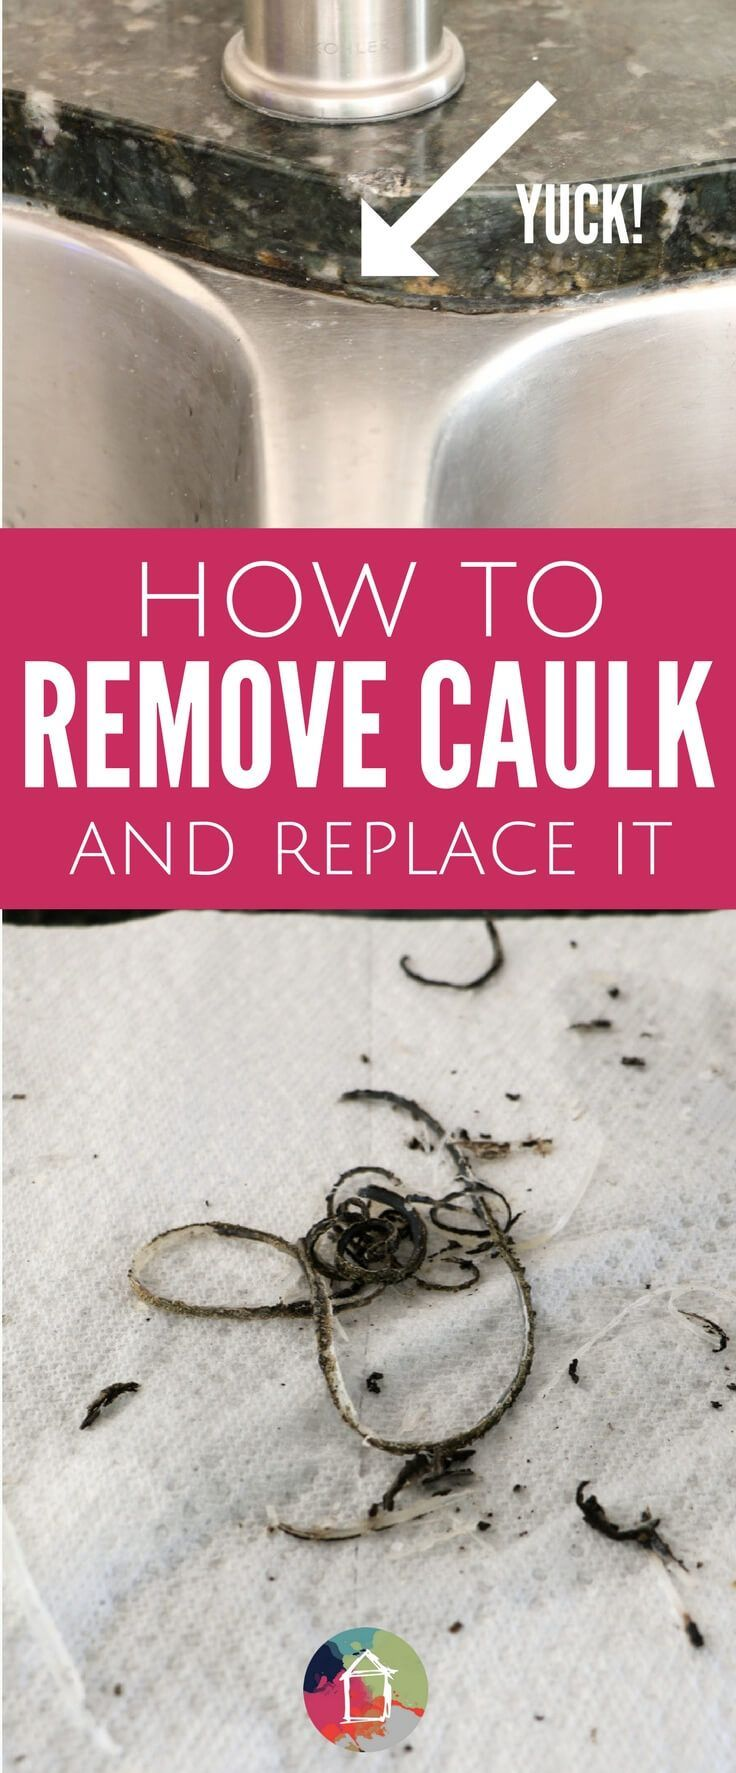 How To Remove Caulk And Replace It Cleaning Painted